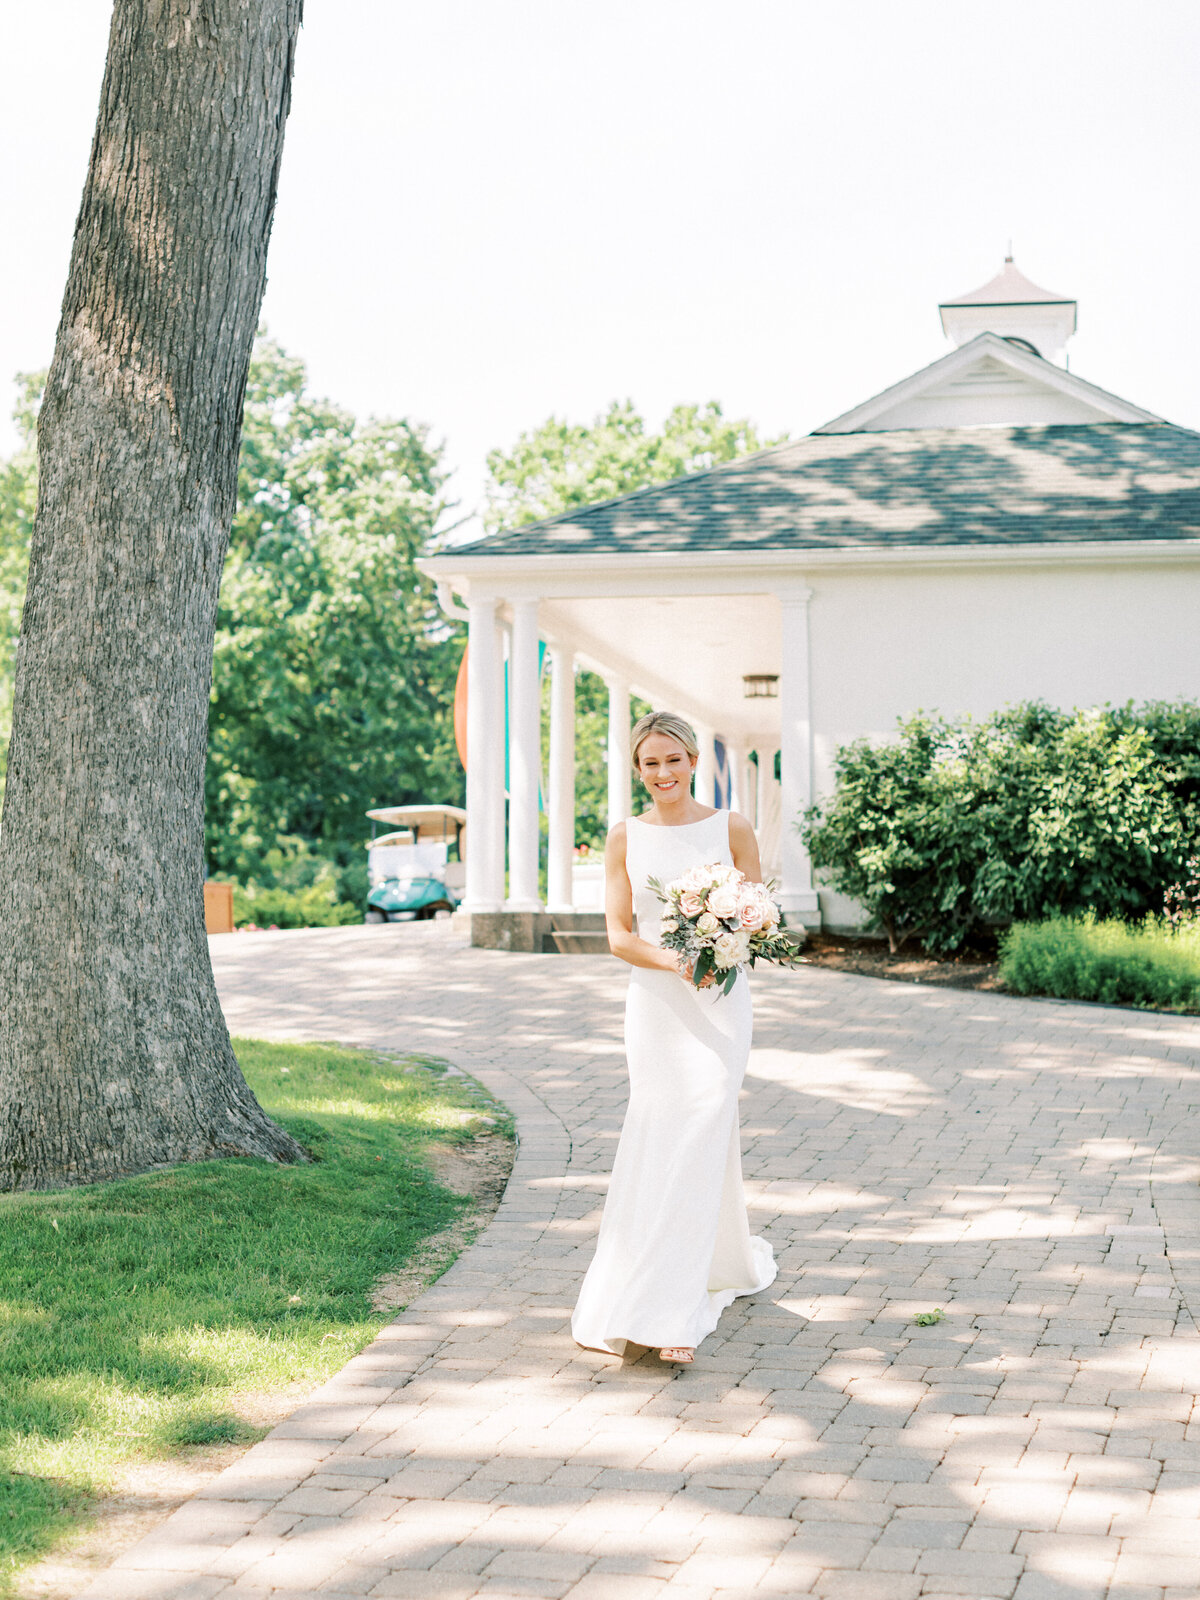 TiffaneyChildsPhotography-DestinationWeddingPhotographer-Michaela+Tommy-ChicagoBotanicGardensWedding-FirstLook-11